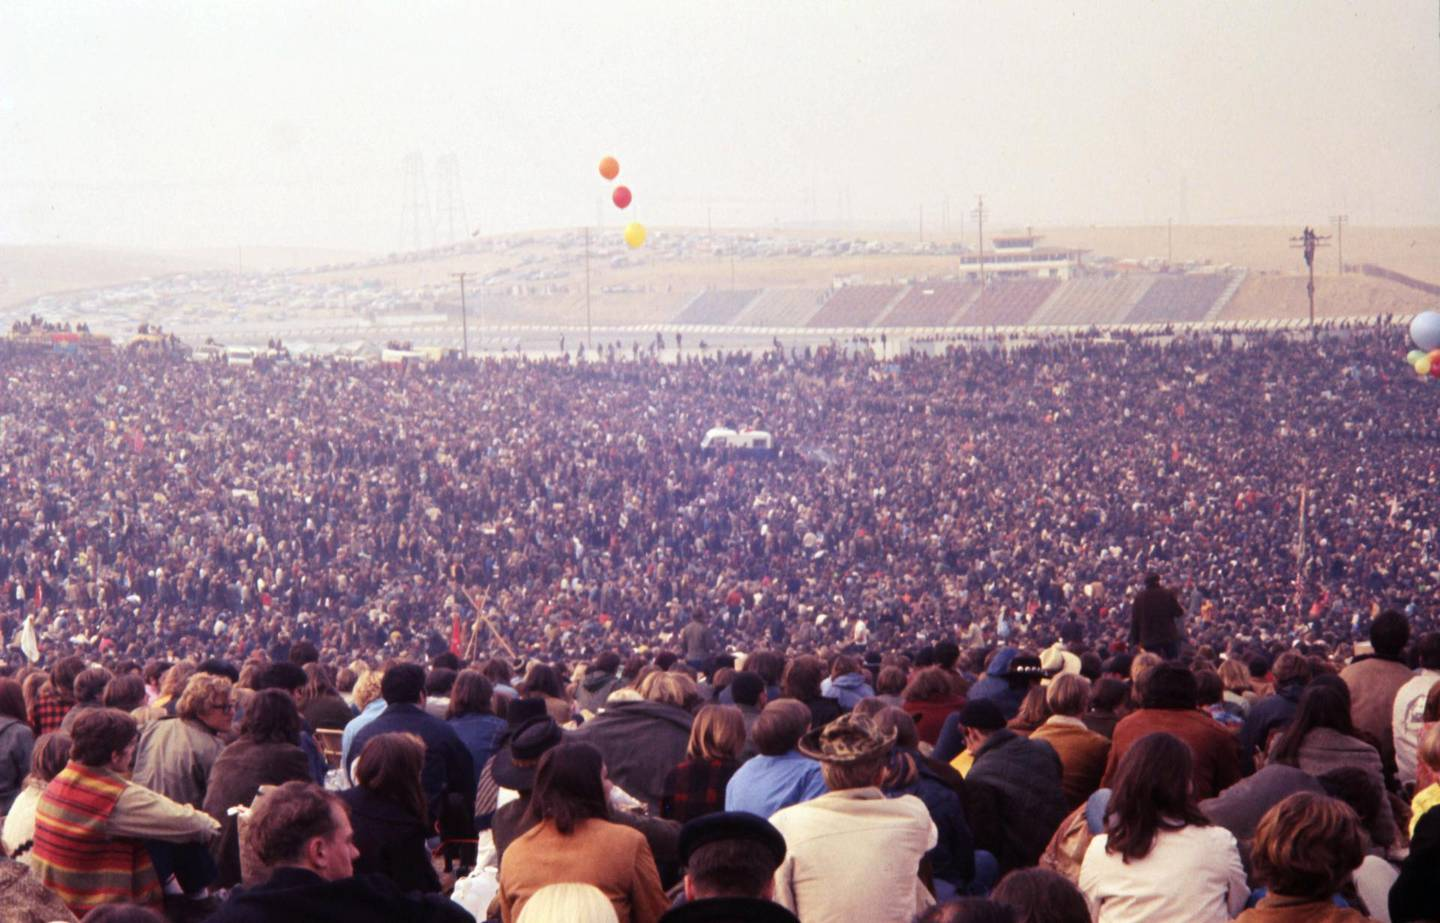 The racetrack's bleachers could not accommodate the rumoured number of 300,000 that the concert attracted. (Photo by William L. Rukeyser/Getty Images)